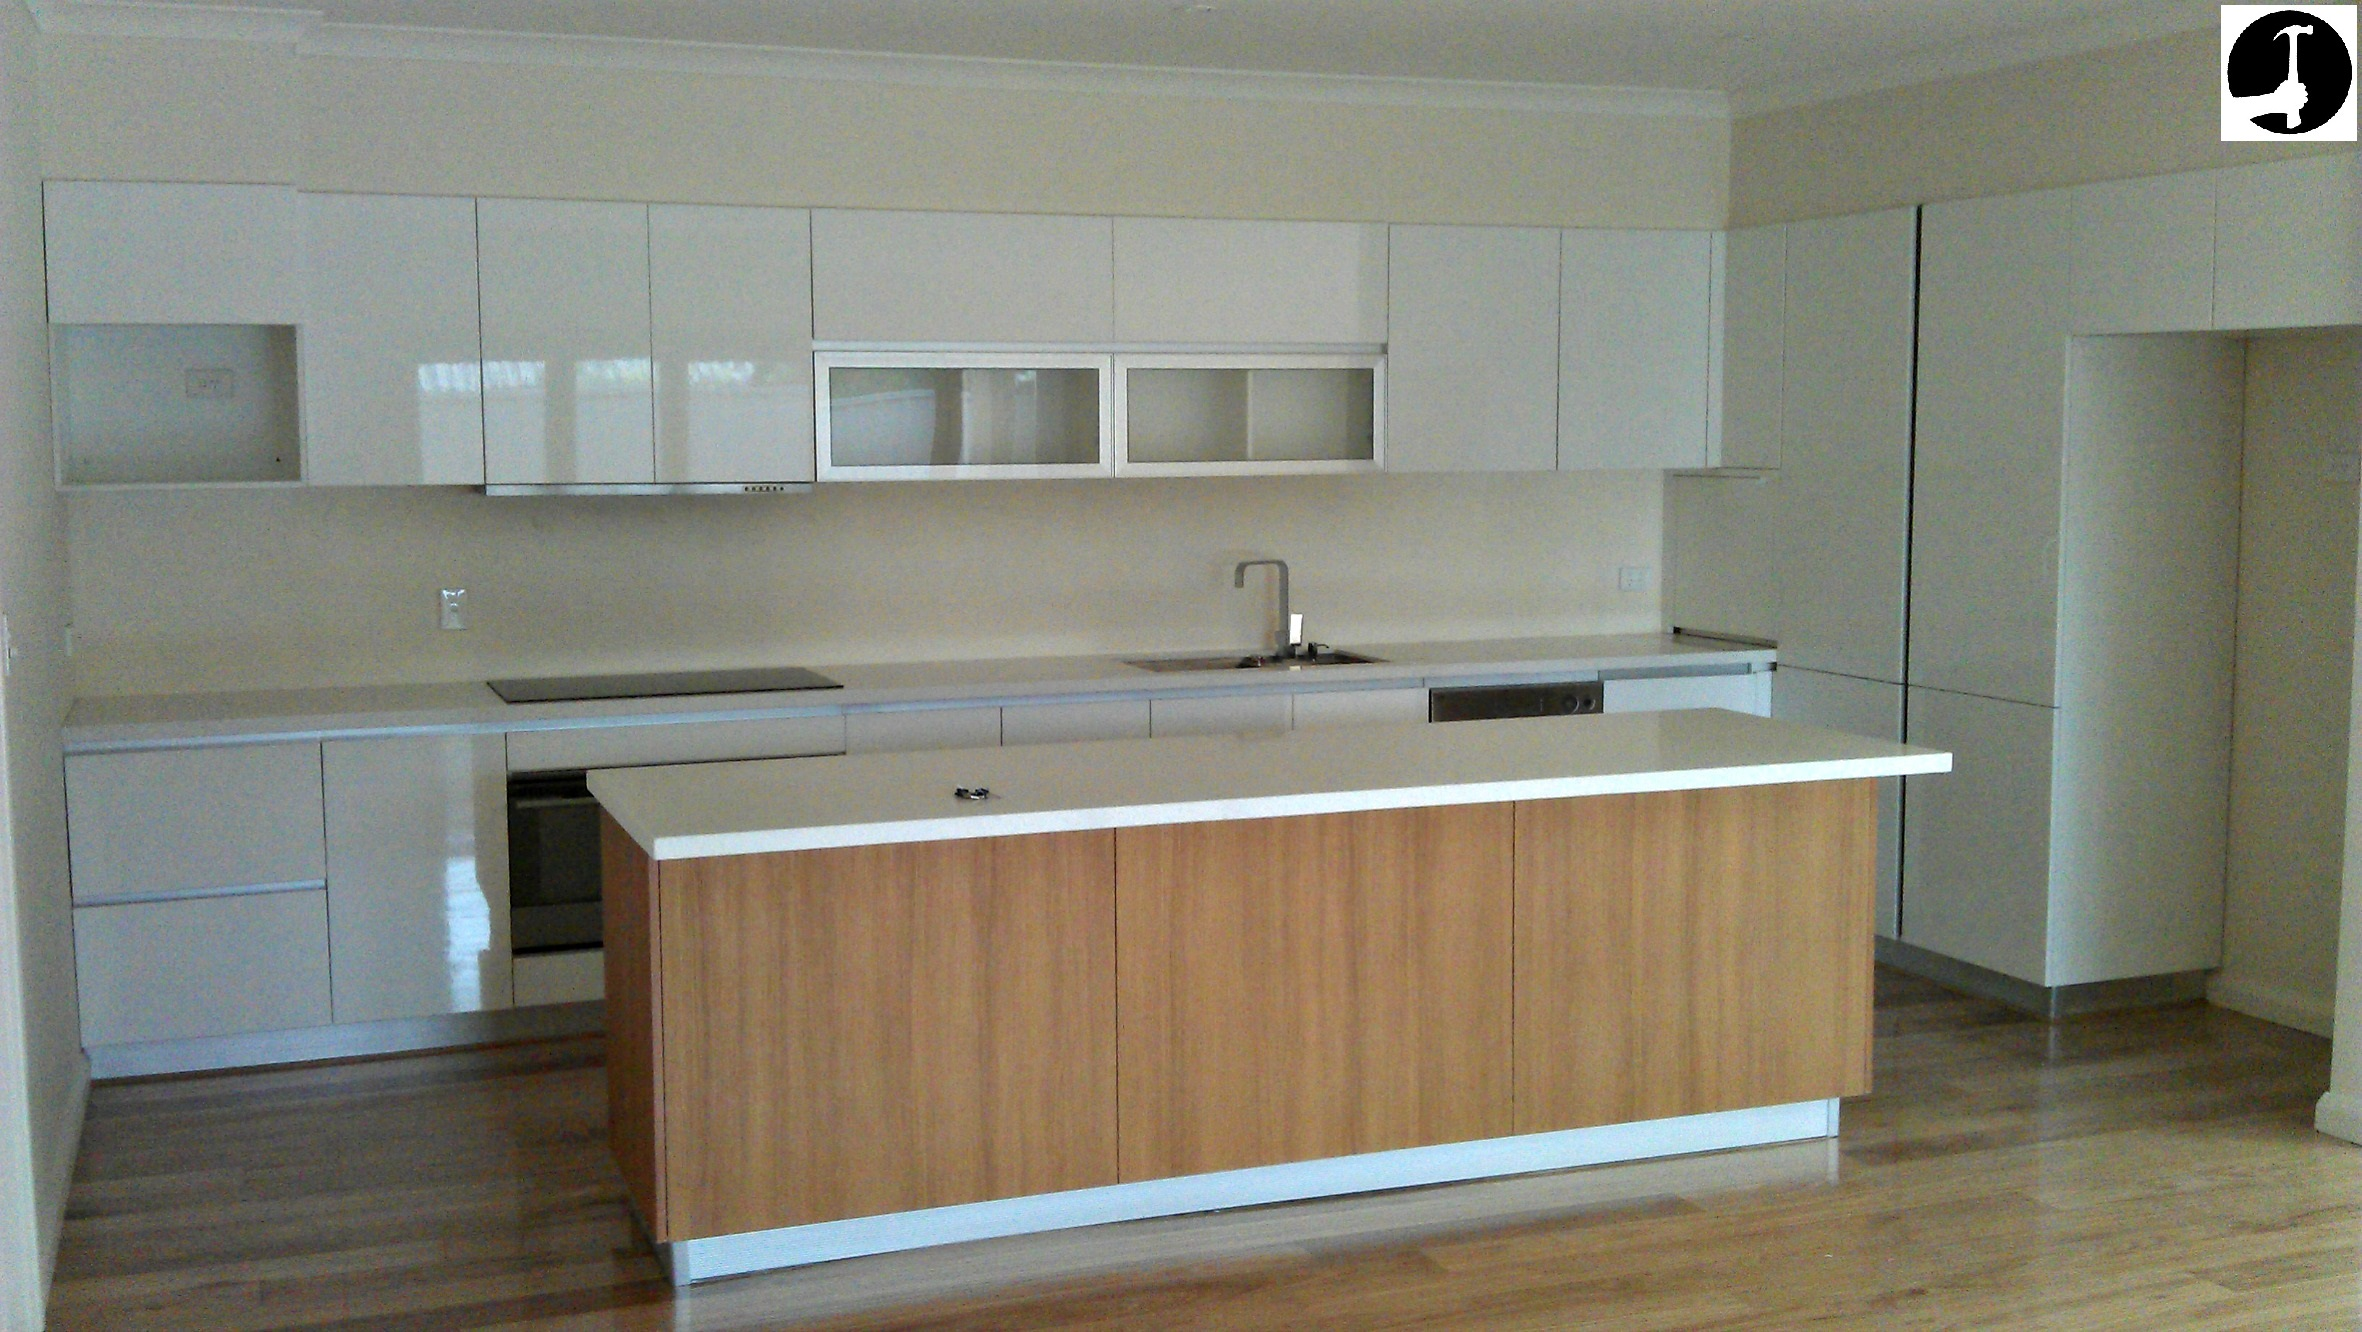 How To Install A Kitchen Like A Pro Perfectly Level And Doors Aligned - Cut kitchen cabinets to fit refrigerator